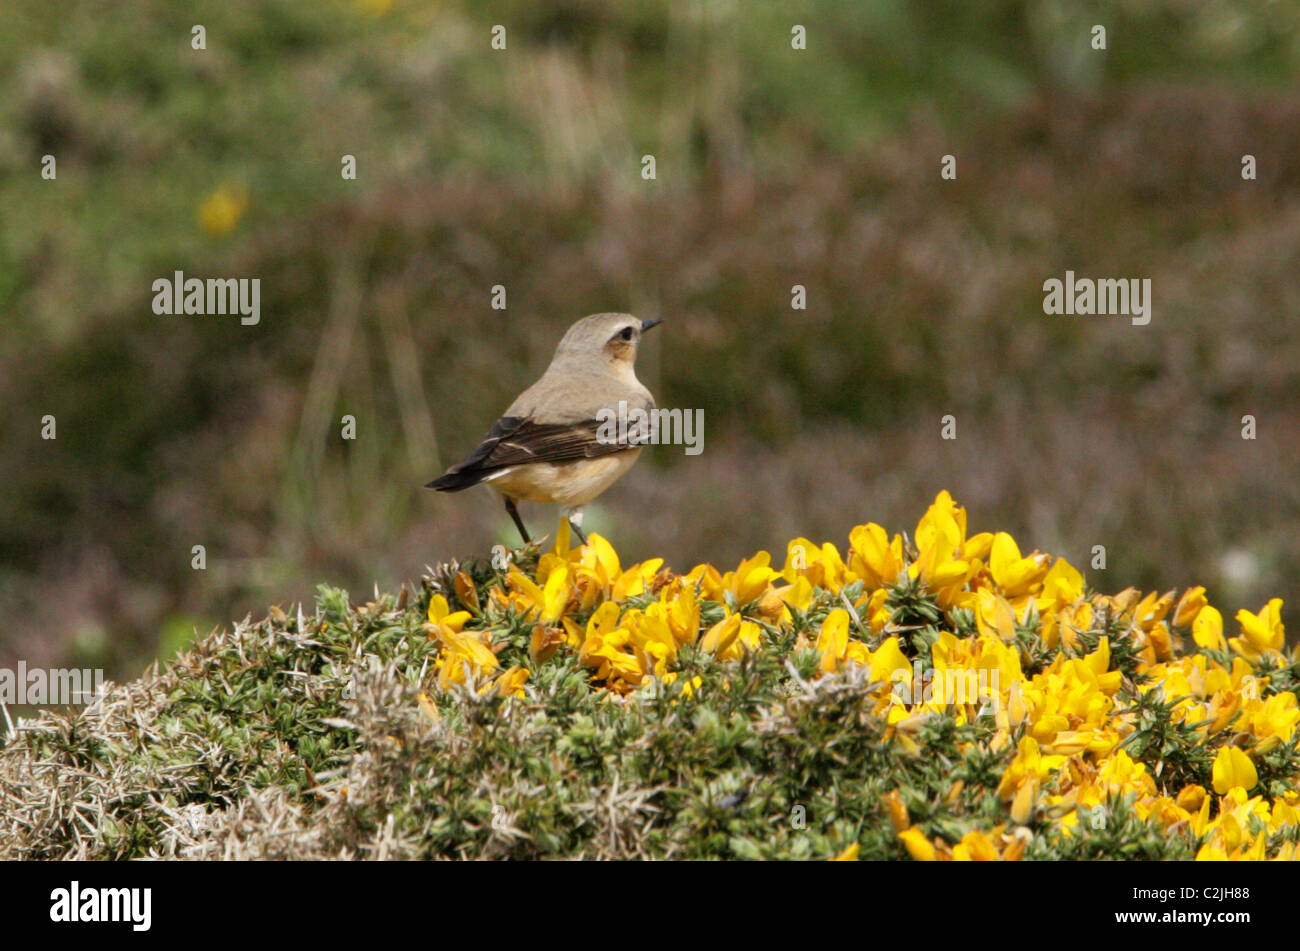 Northern Wheatear, Oenanthe oenanthe, Muscicapidae. Male Bird Perched on a Gorse Bush, Cornwall, UK. - Stock Image